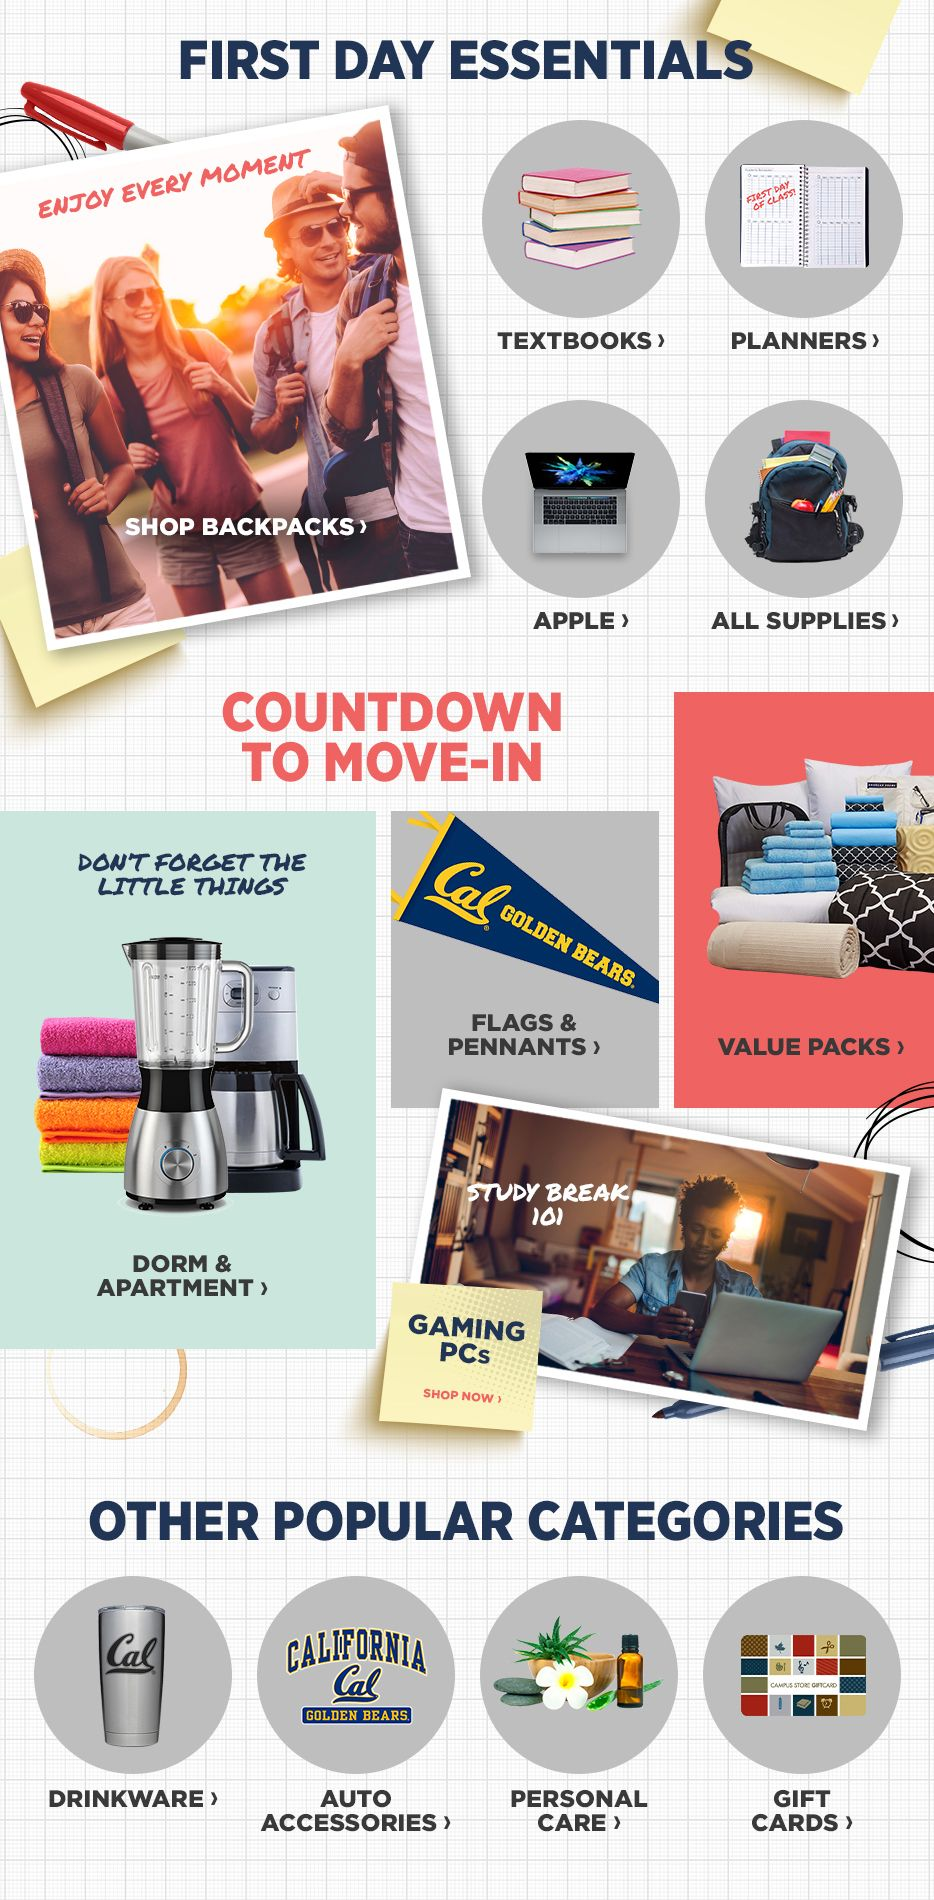 First Day Essentials. Shop Textbooks. Shop Planners. Shop Apple. Shop All Supplies. Countdown to Move-In. Shop Dorm & Apartment. Shop Flags & Pennants. Shop Value Packs. Shop Gaming PCs. Other Popular Categories. Shop Drinkware. Shop Auto Accessories. Shop Personal Care. Shop Gift Cards.